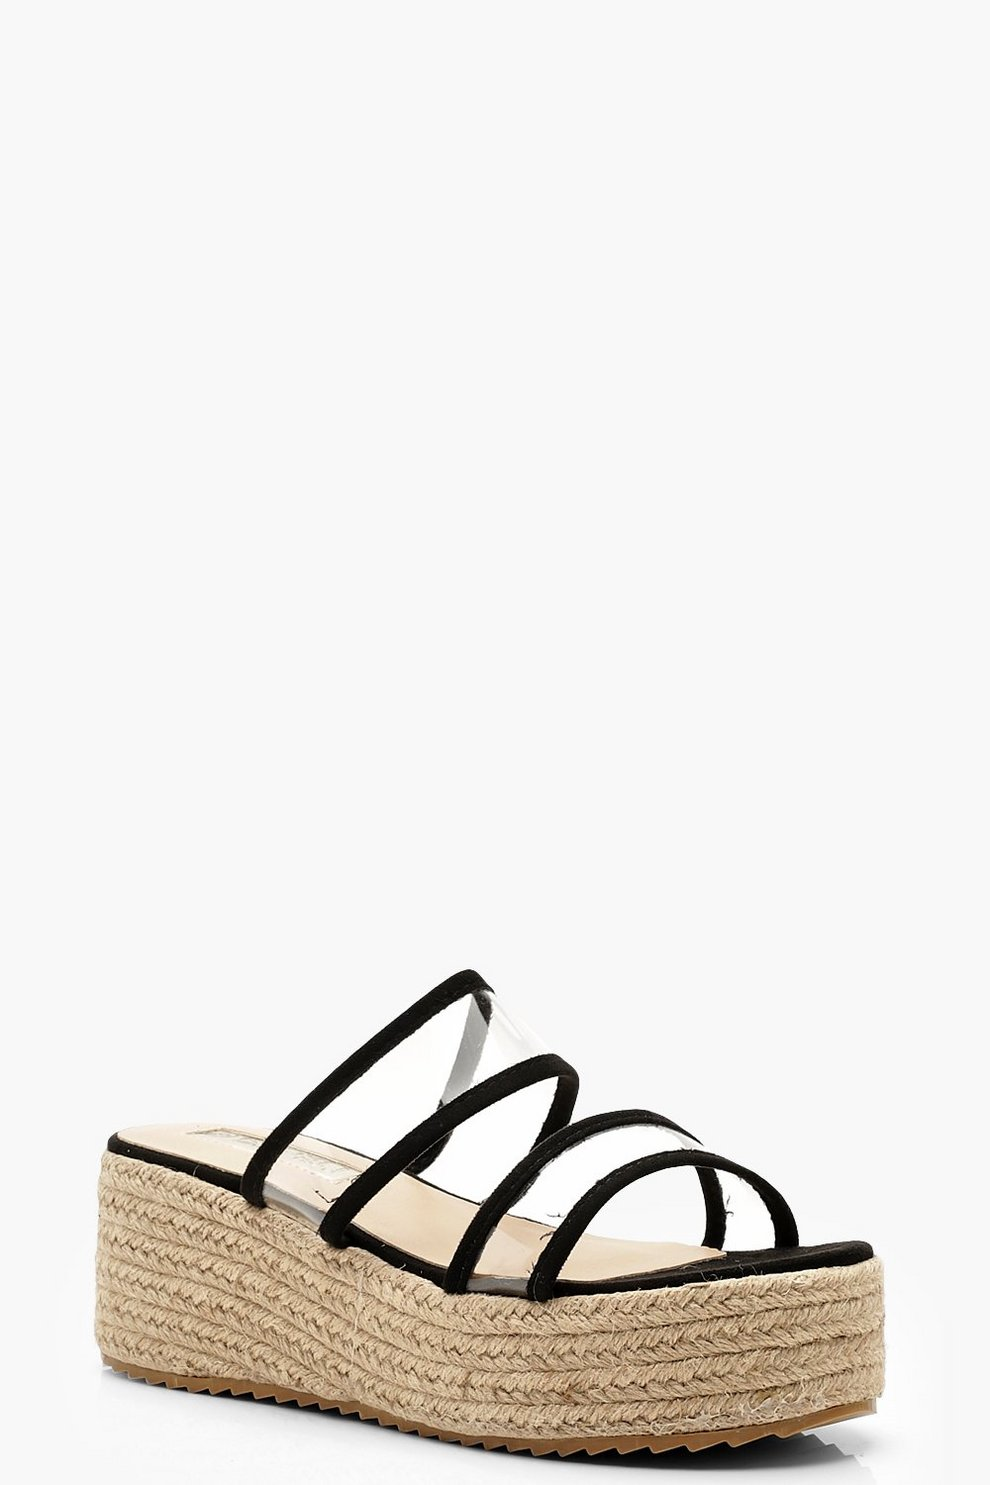 7b99ebaaa34 Clear Panel Espadrille Flatforms